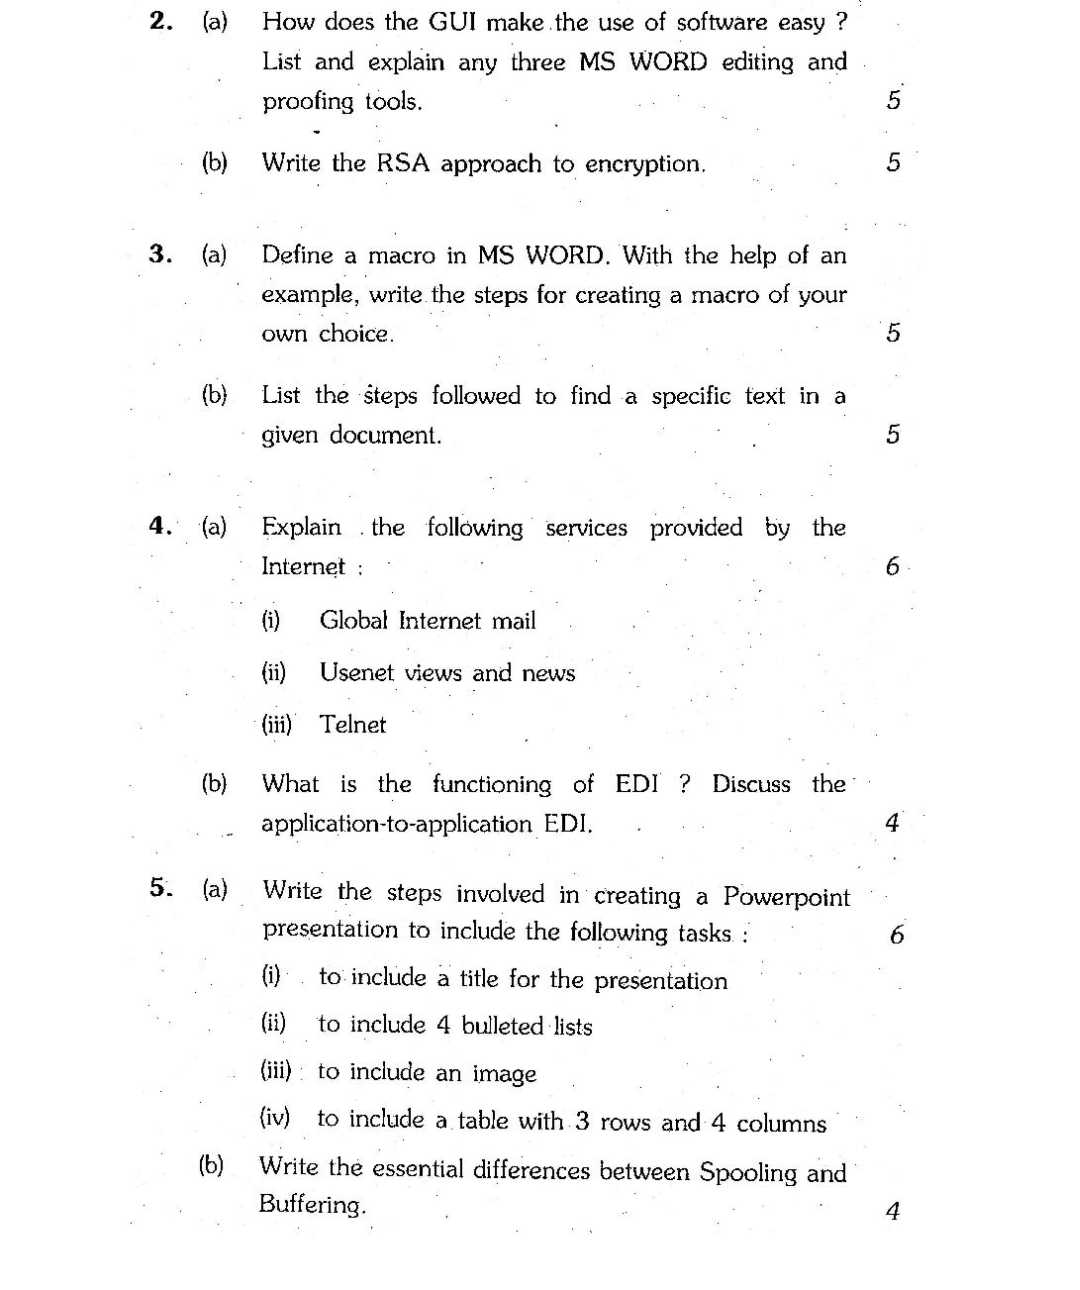 013 Attention Grabbers For Essays Examples Essay Example Ignou Computer Paper Unforgettable Of Expository Persuasive Full